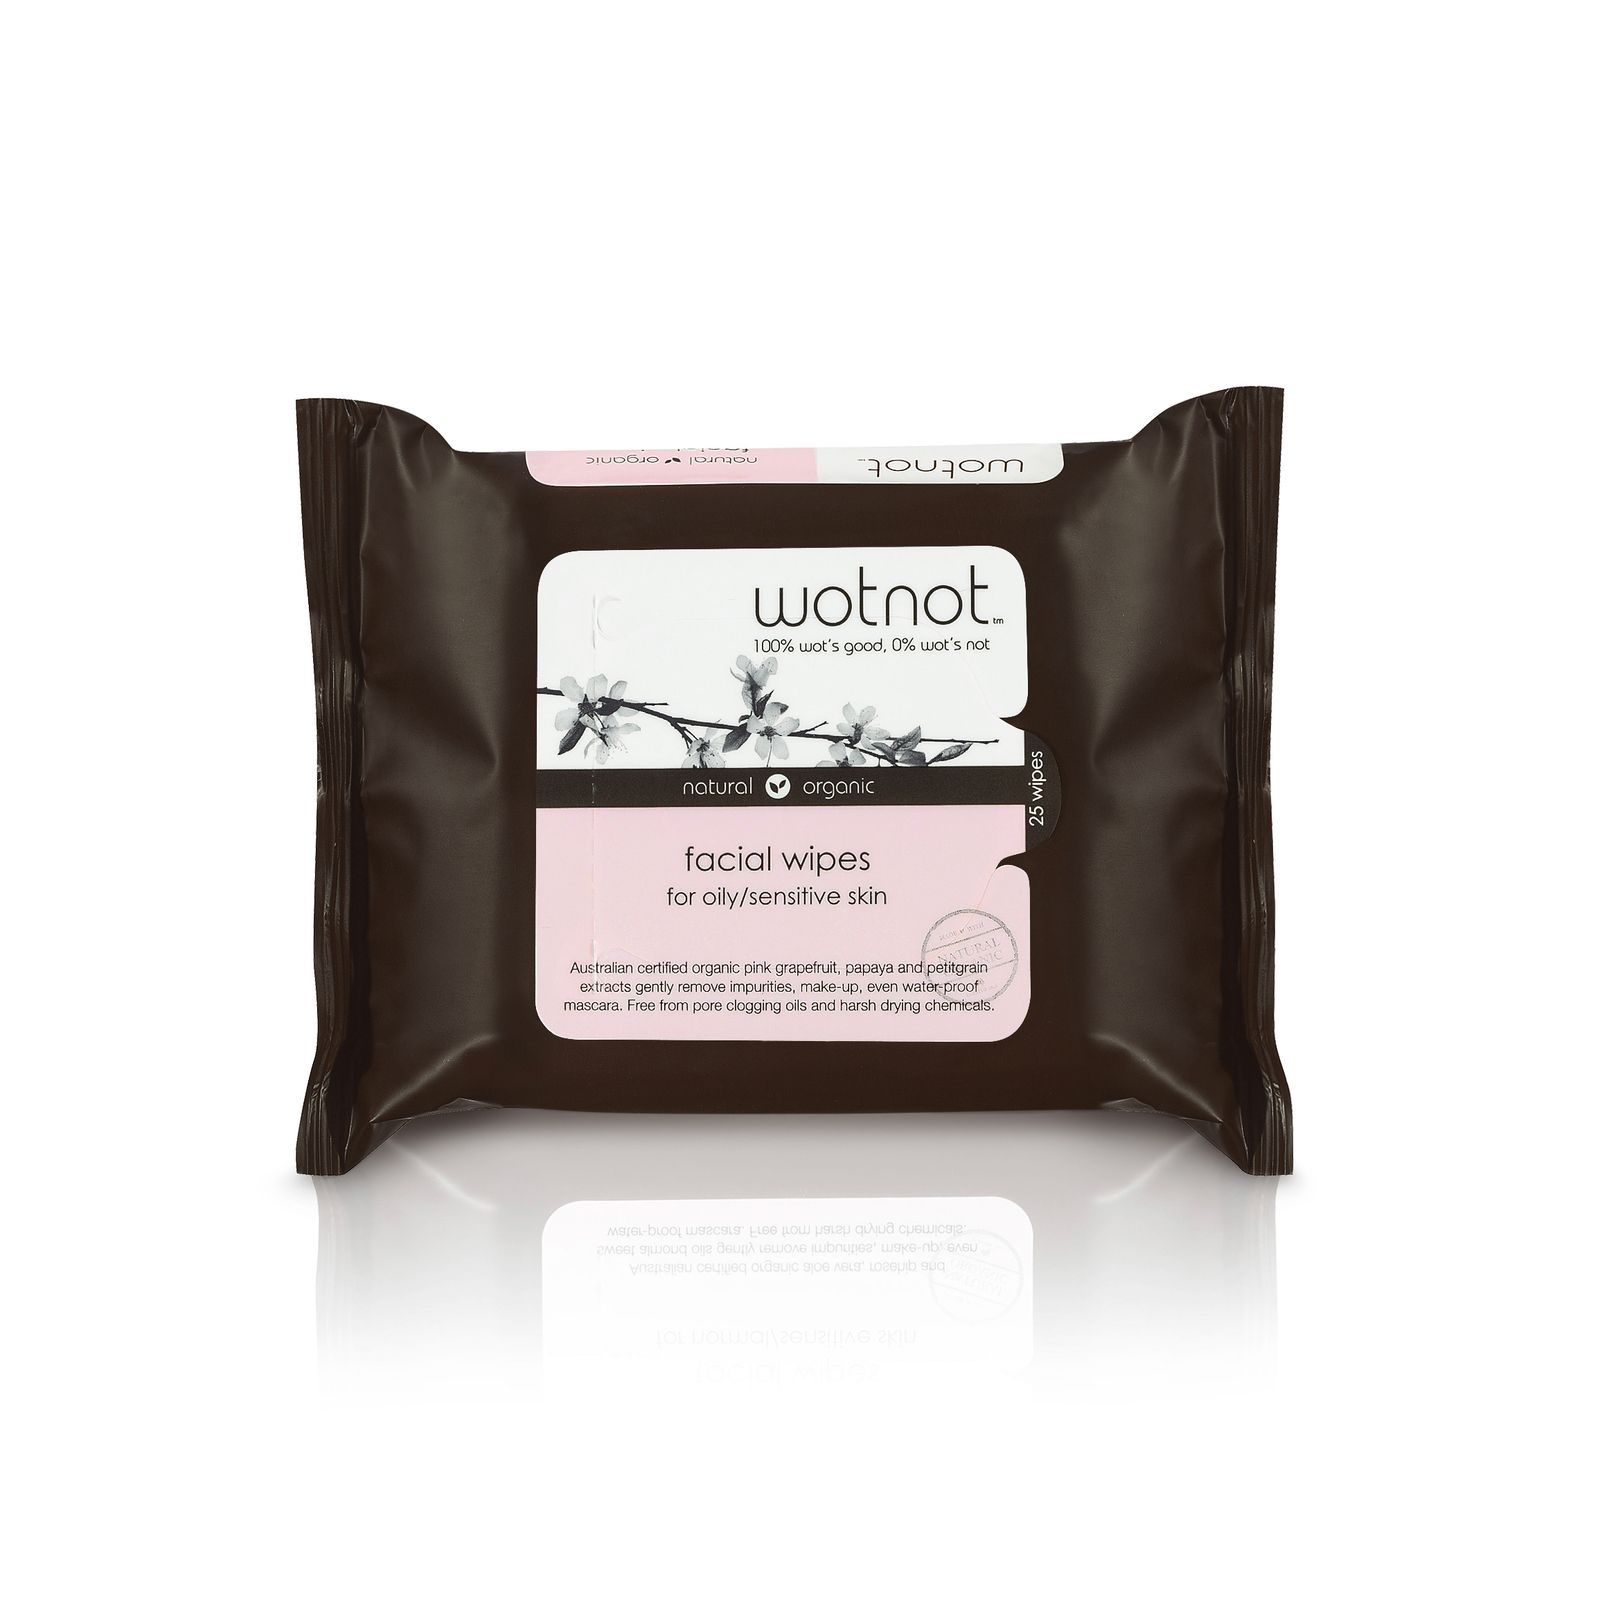 Wotnot Natural Facial Wipes For Oily & Combination Skin